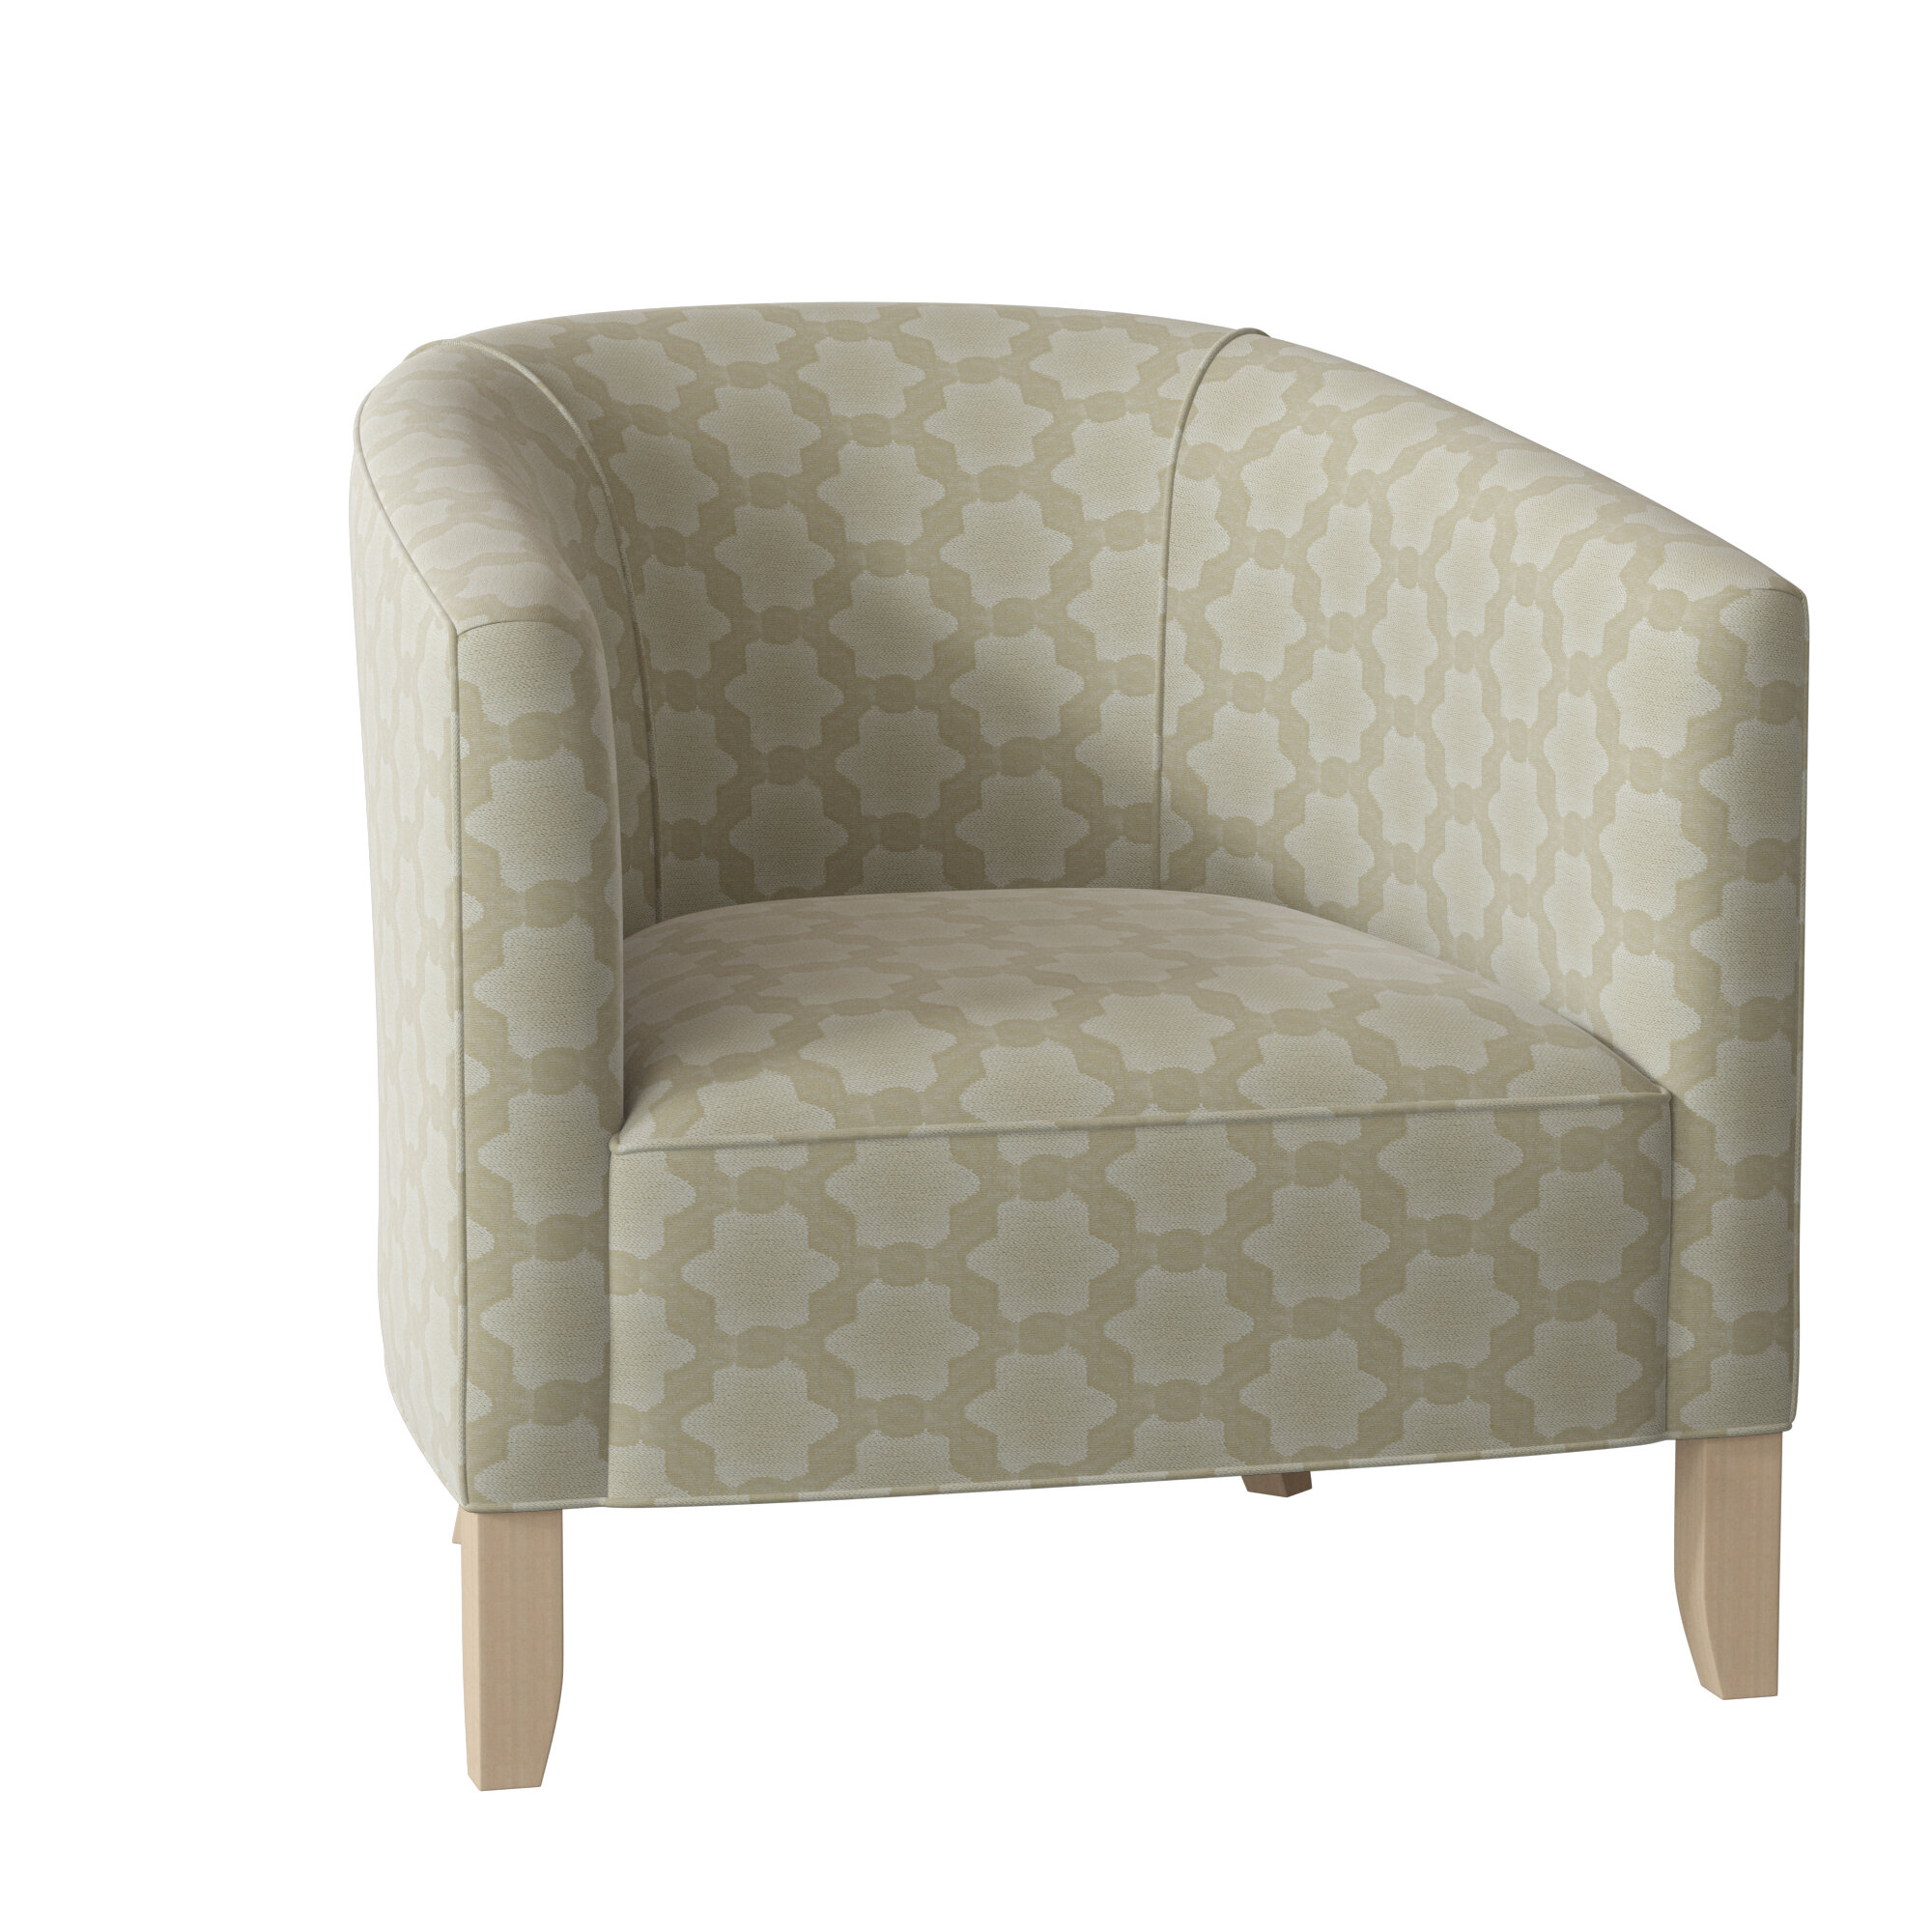 Barrel Yellow Accent Chairs You'Ll Love In 2021 | Wayfair Throughout Alwillie Tufted Back Barrel Chairs (View 3 of 15)